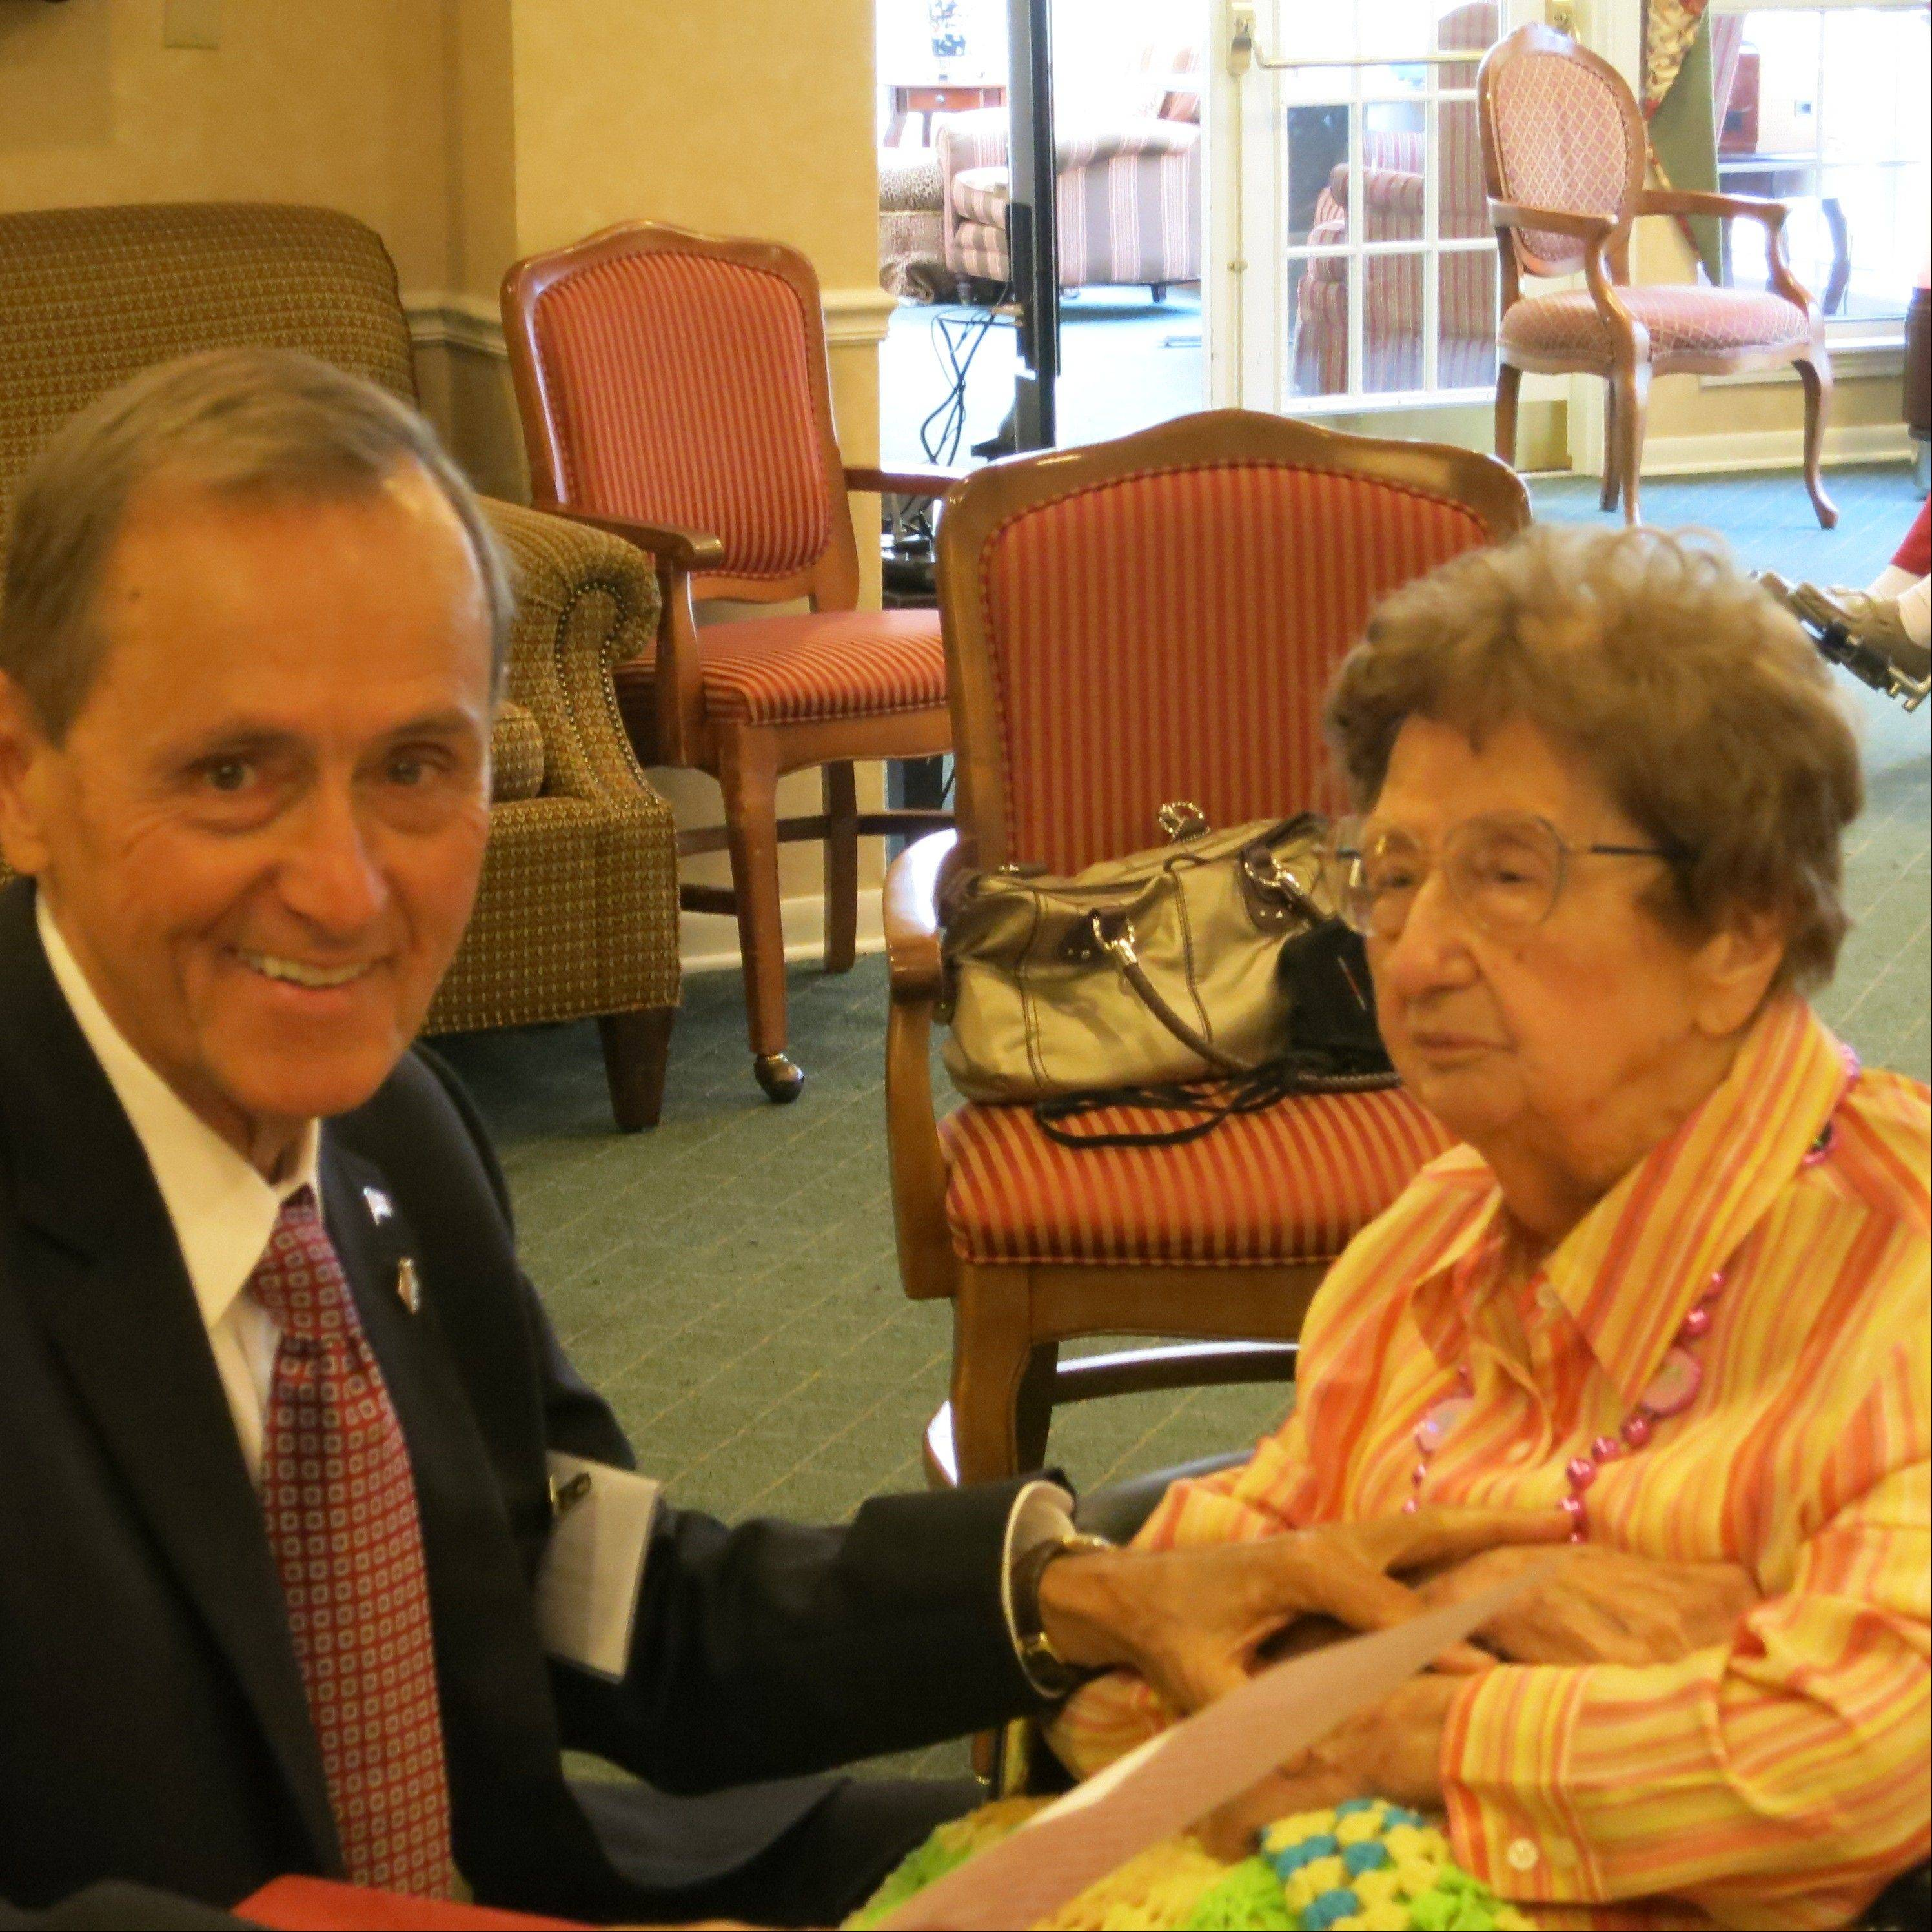 Prospect Heights Mayor Nick Helmer Joins Natalie Arendt to celebrate her 100th birthday at Emeritus Senior Living.